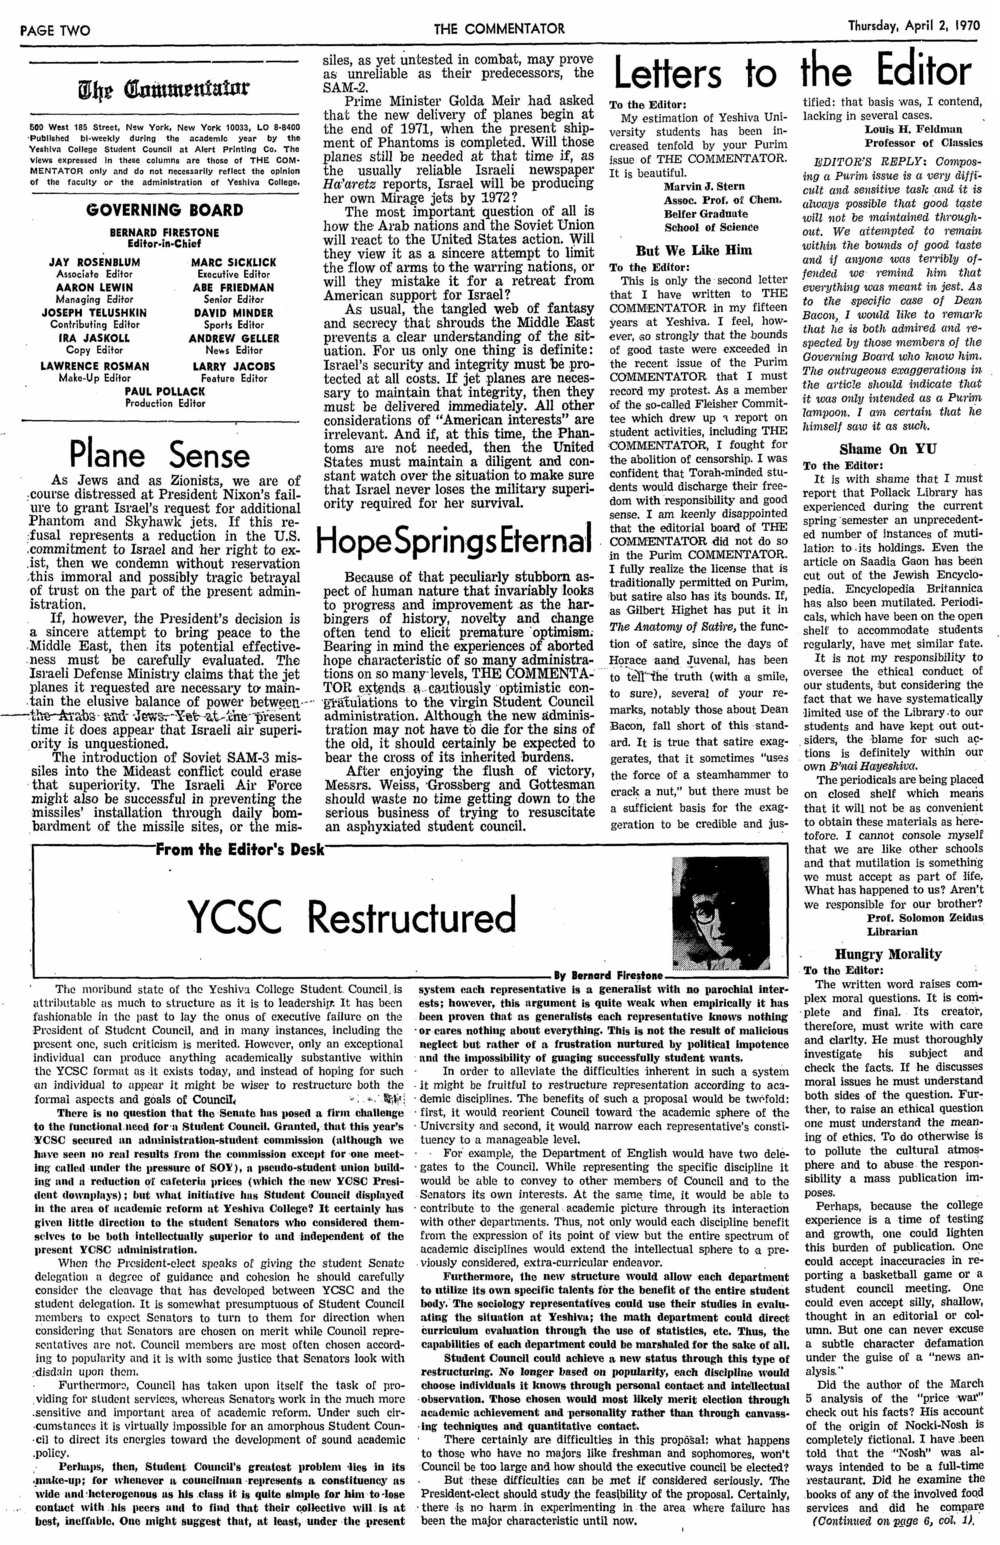 1970.4.2.TC--Letters to the Editor.jpg